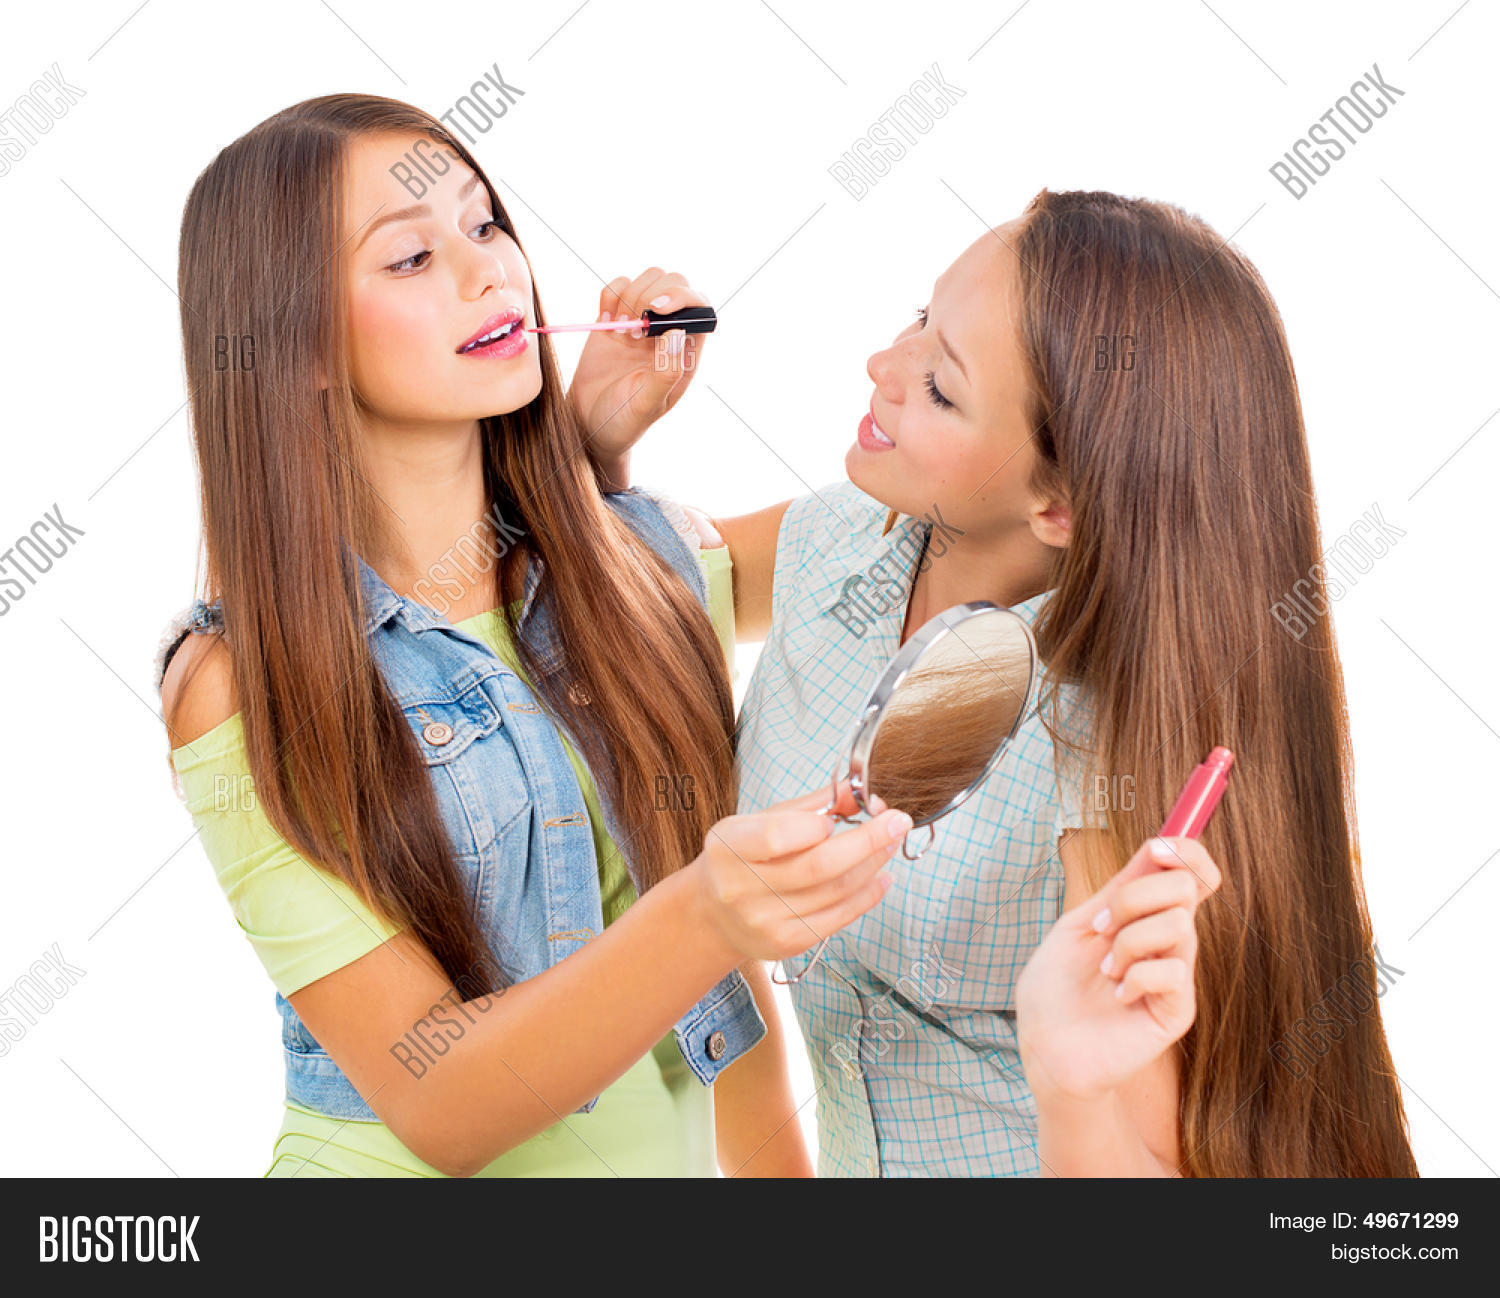 A teen girl in lip gloss 8